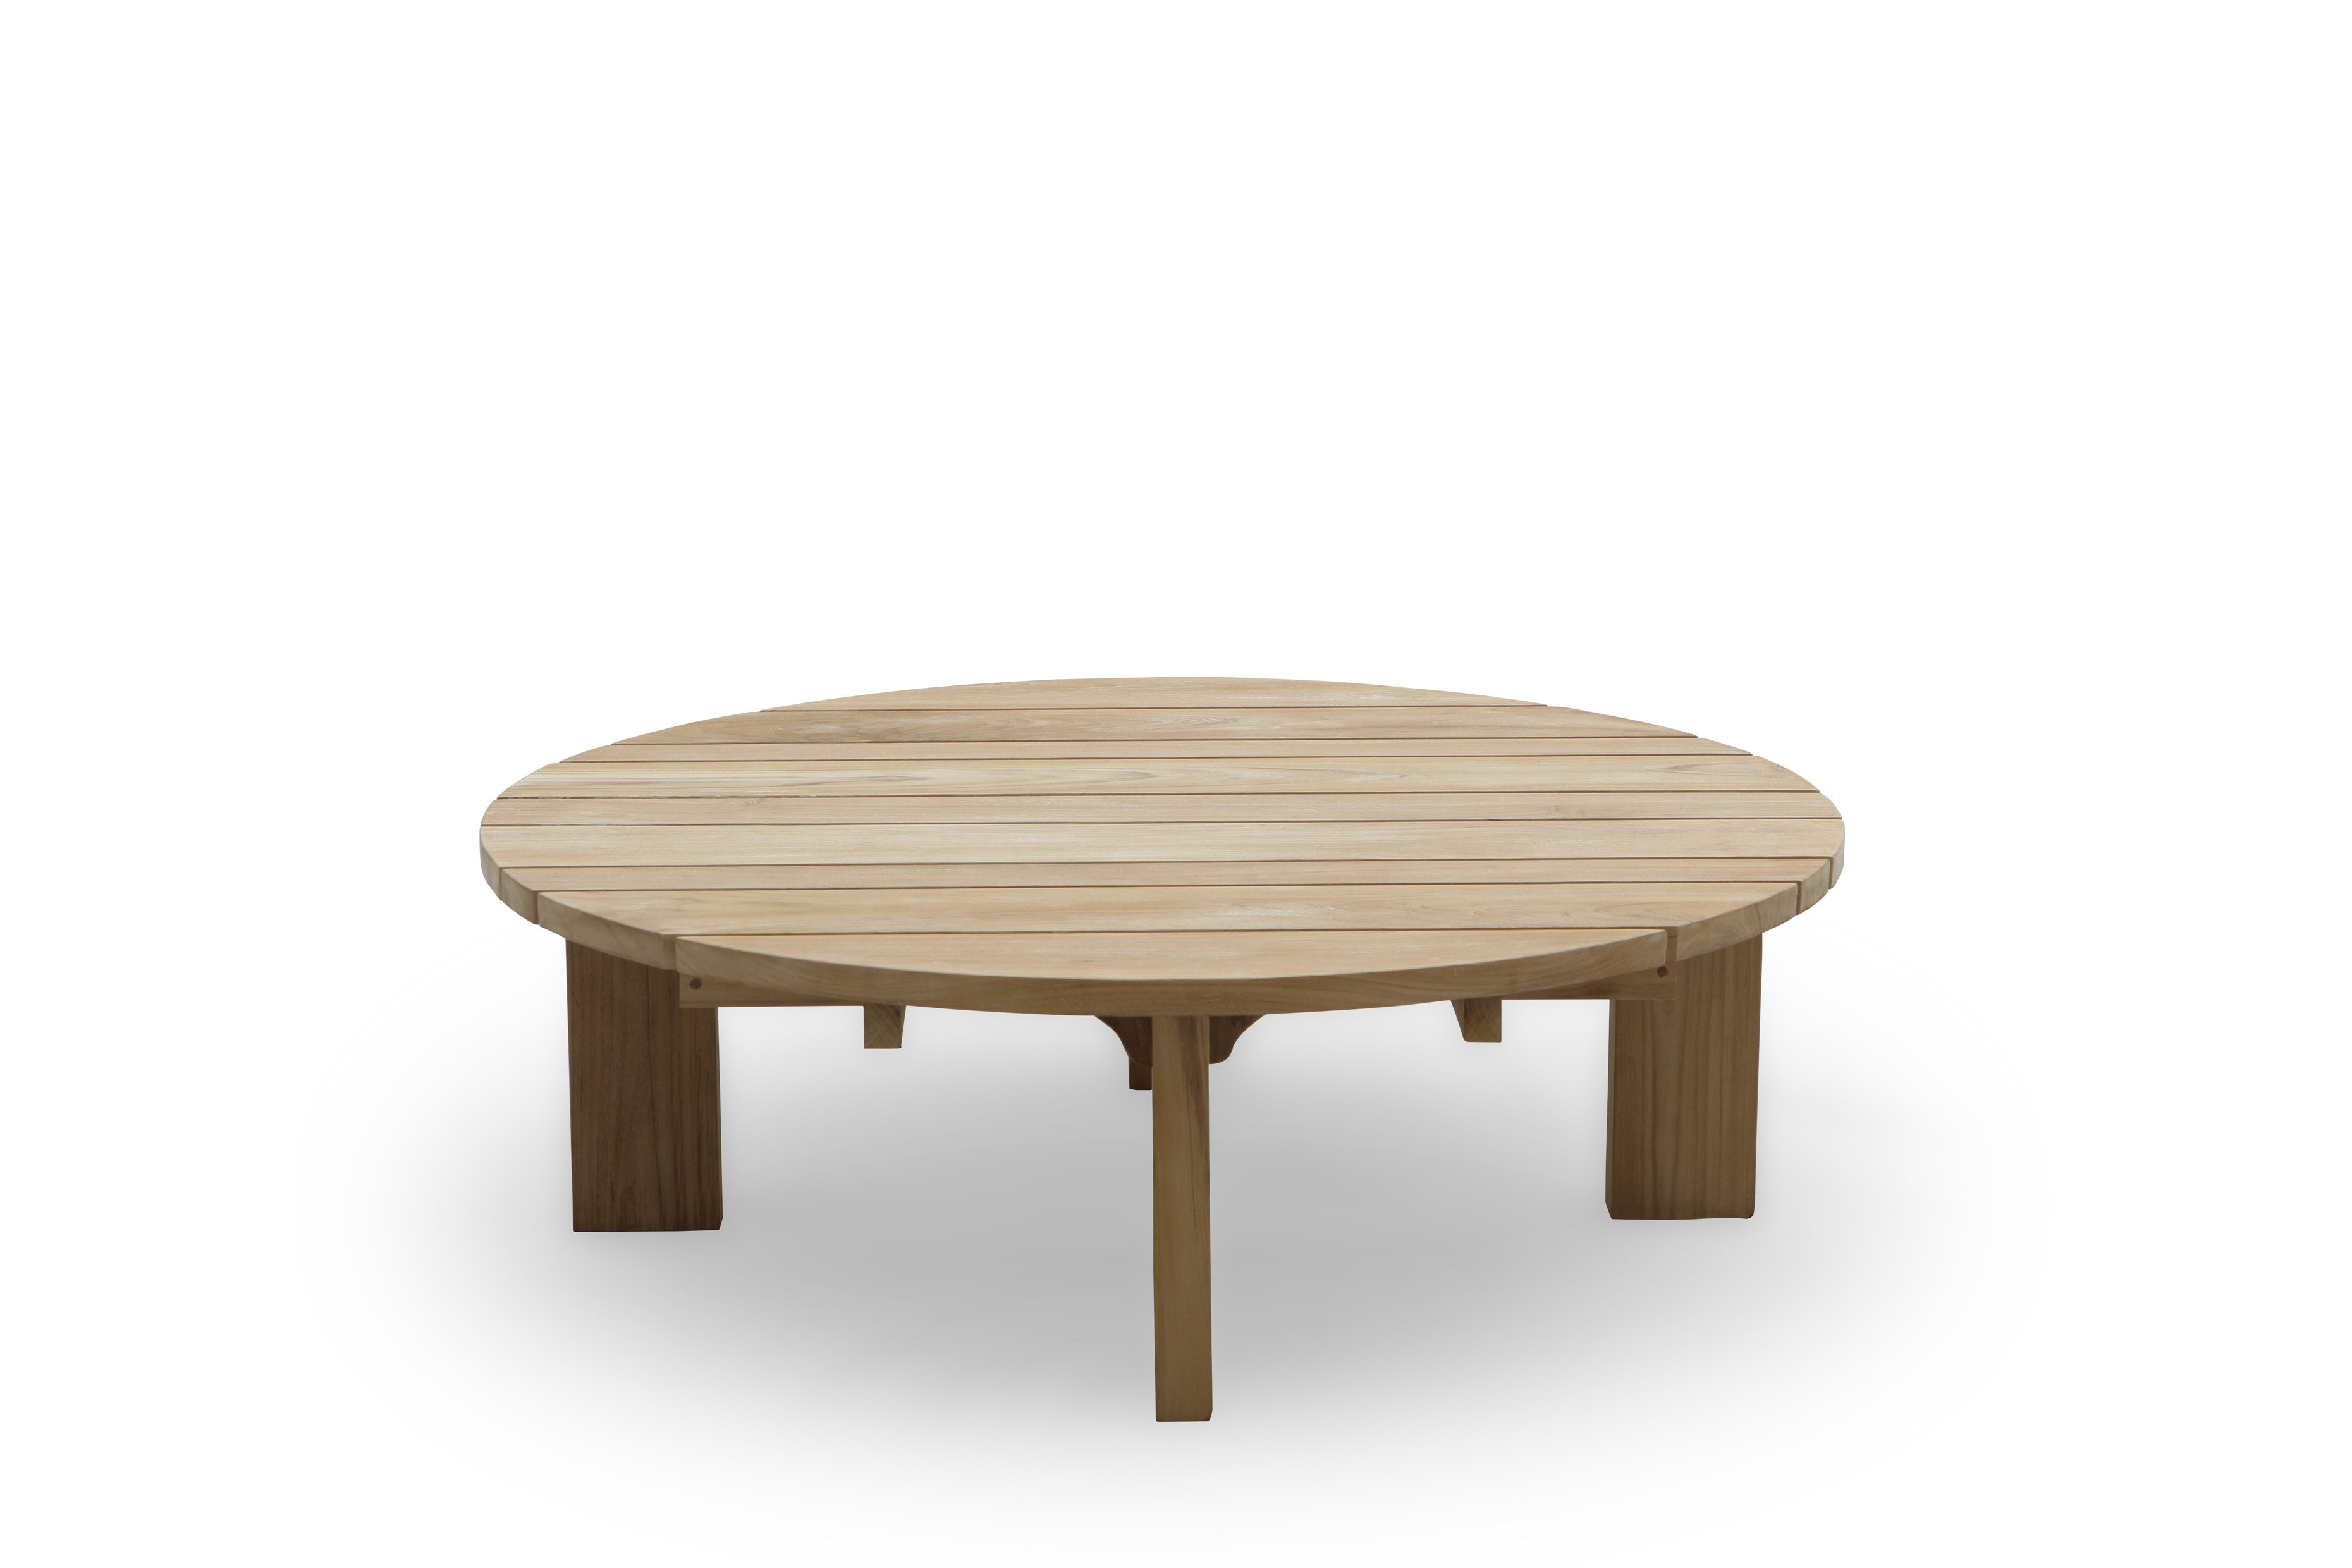 Photos of round table from front